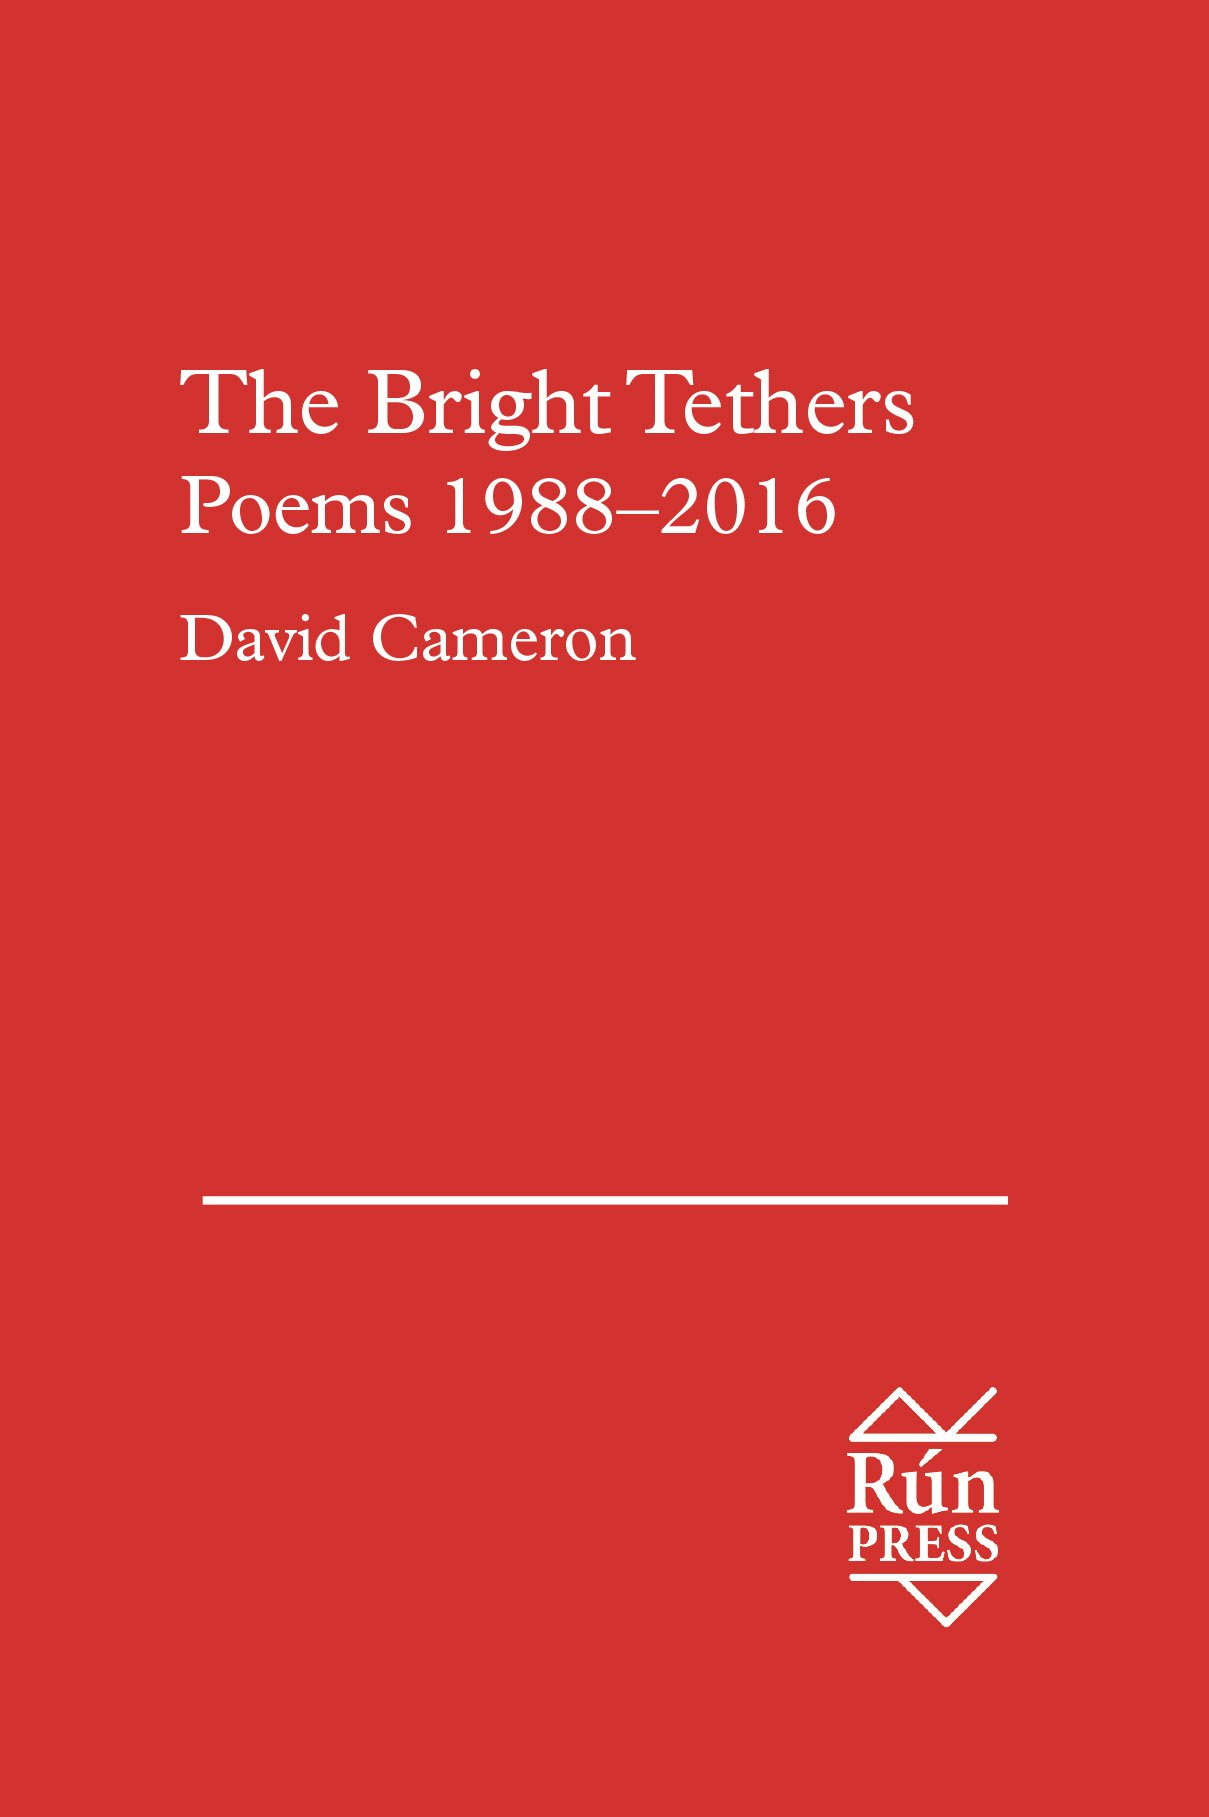 The Bright Tethers: Poems 19882016: Amazon: David Cameron:  9780957466968: Books